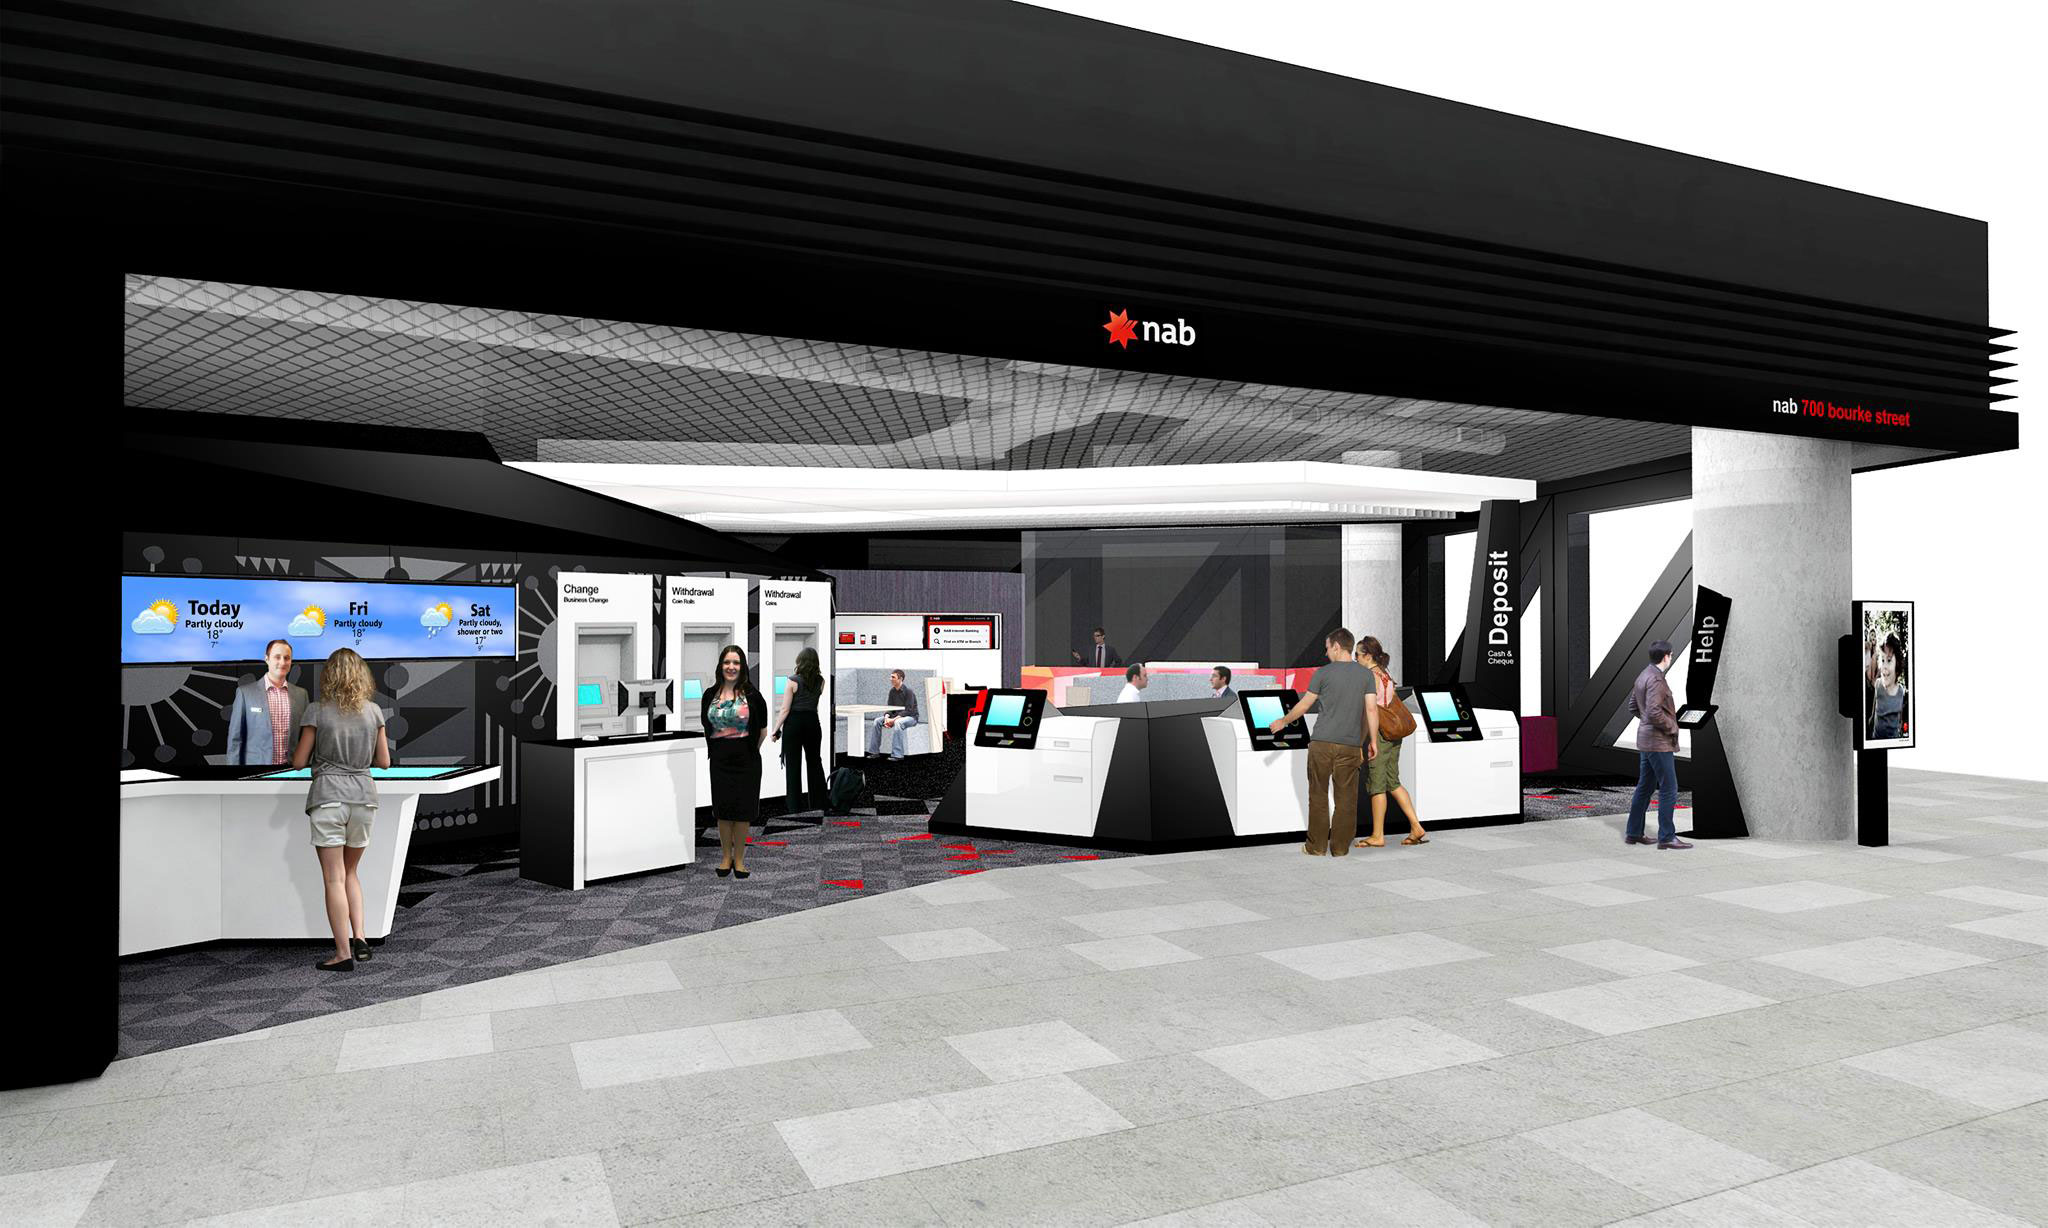 Nab Store Interior The Financial Brand